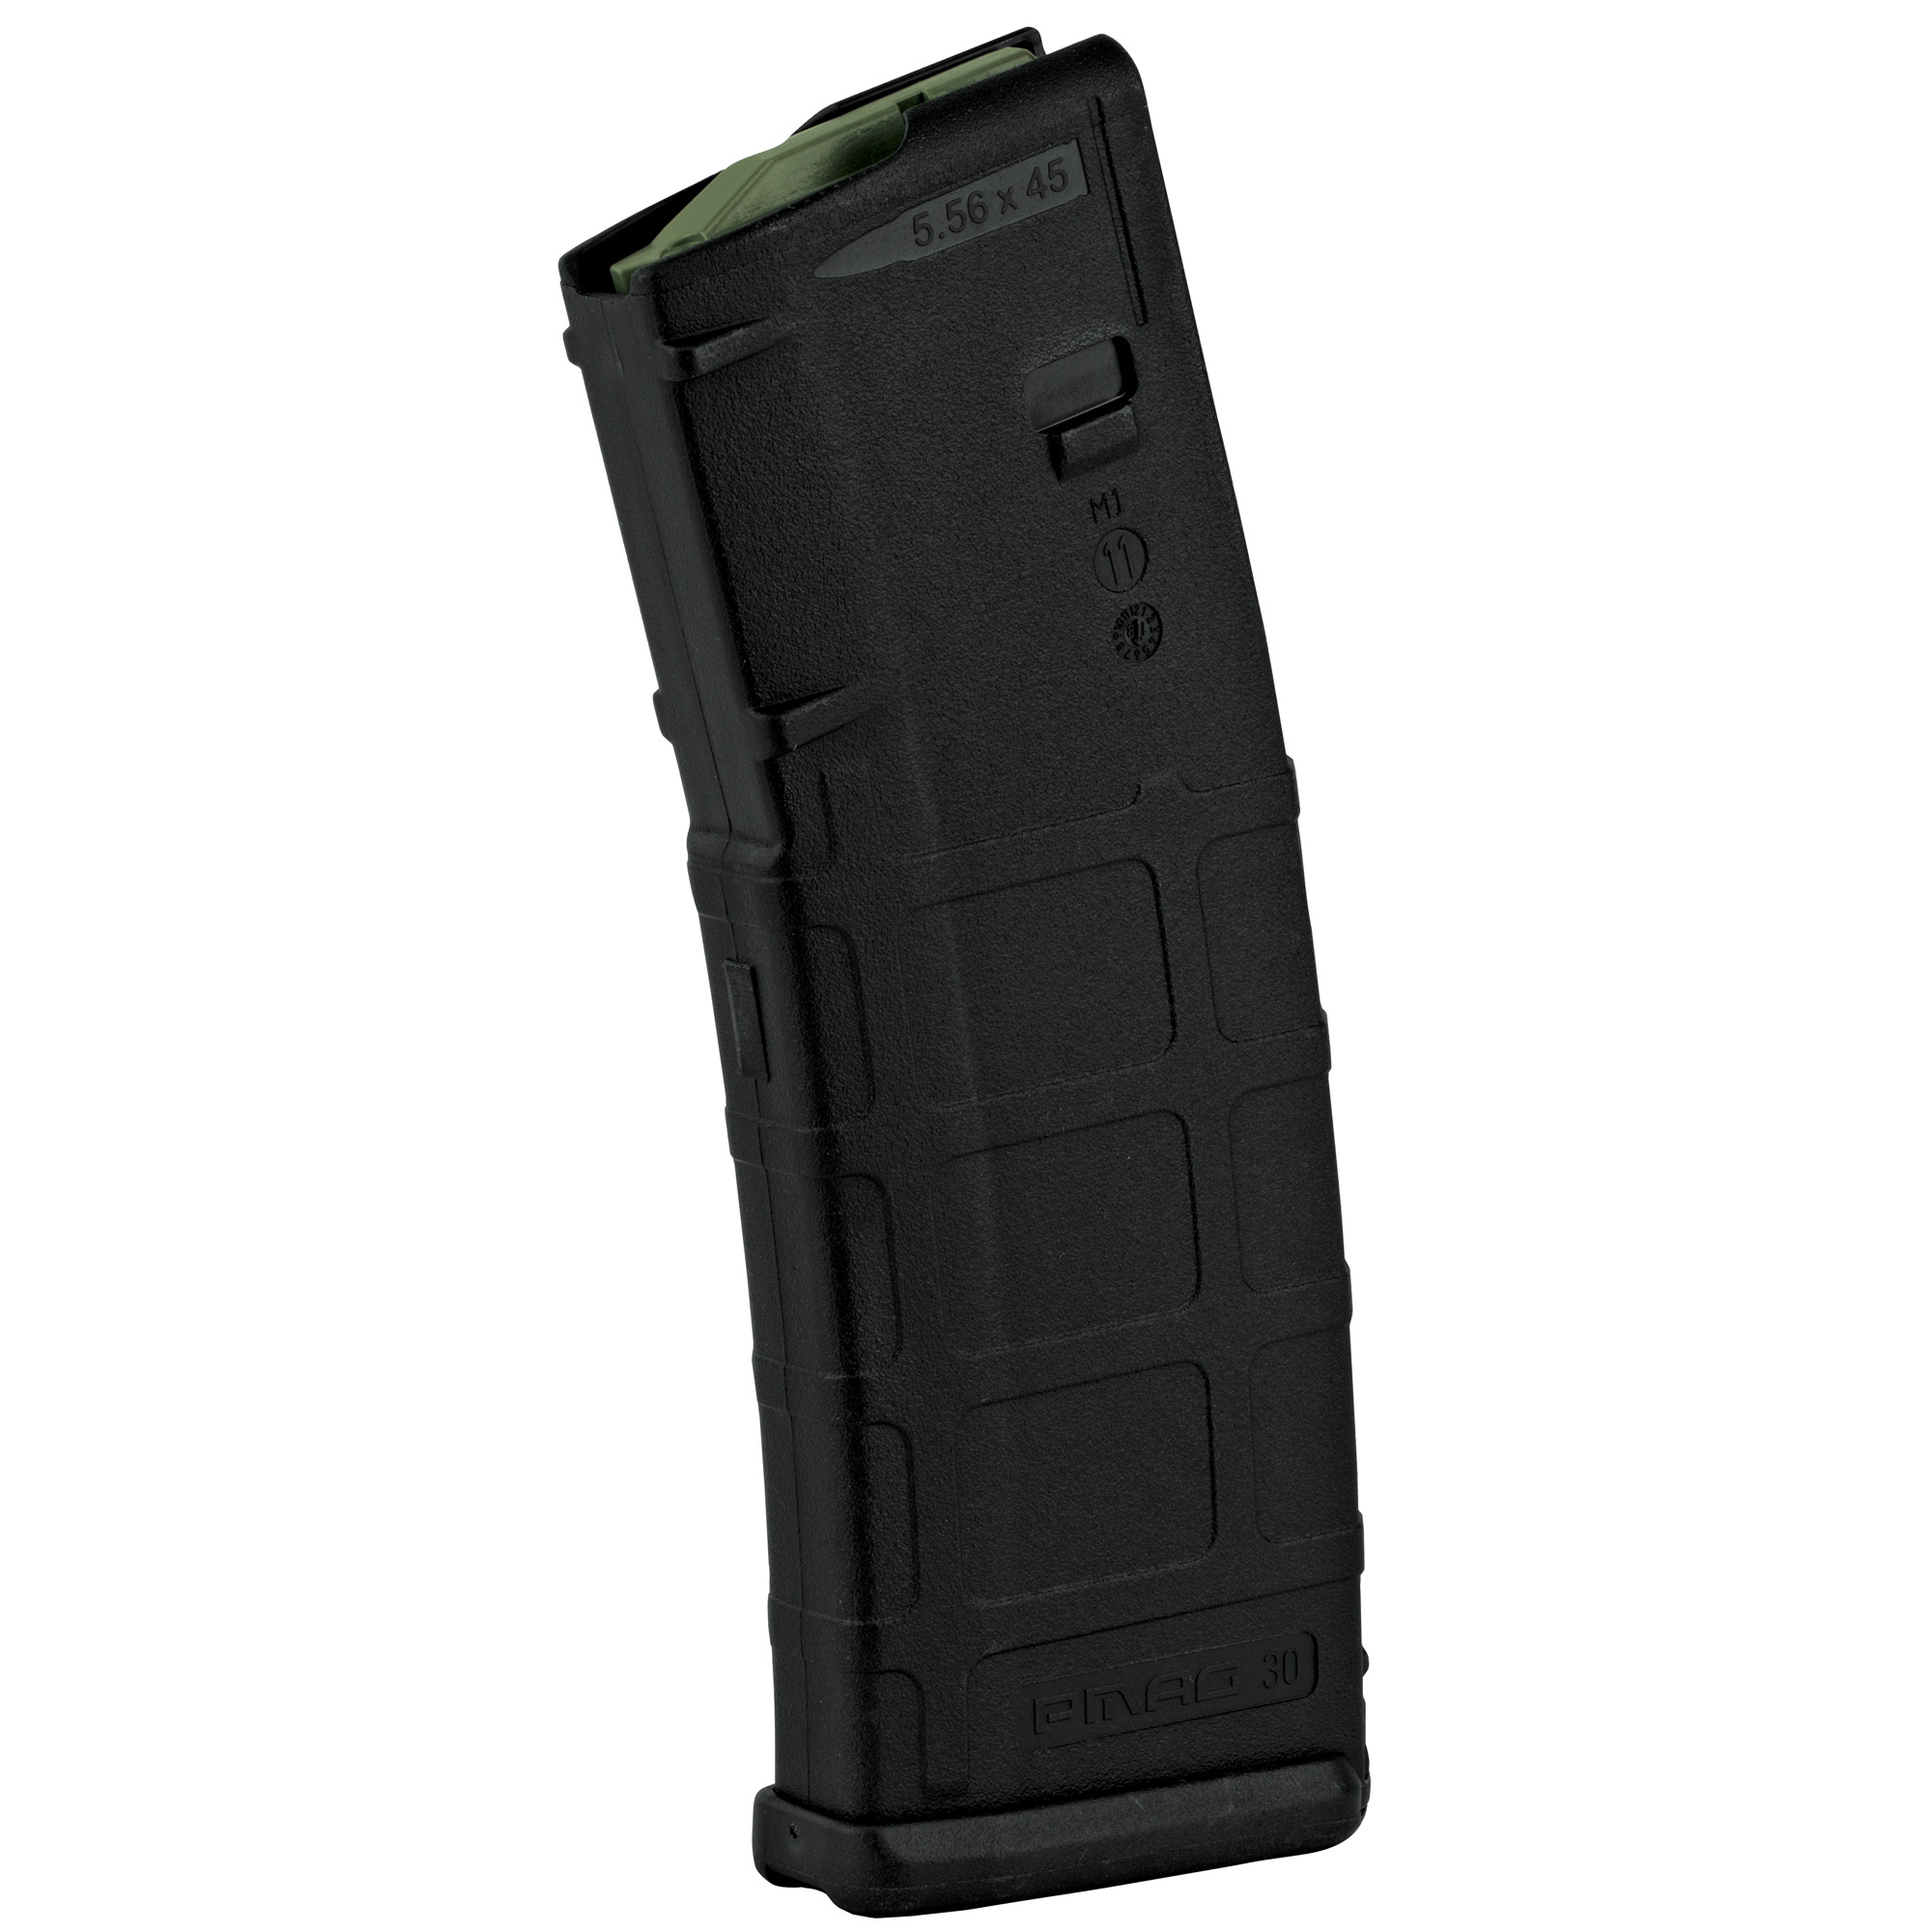 """The PMAG 30 AR/M4 GEN M2 MOE is a 30-round 5.56x45 NATO (.223 Remington) AR15/M4 compatible magazine that offers a cost competitive upgrade from the aluminum USGI. It features an impact resistant polymer construction"""" easy to disassemble design with a flared floorplate for positive magazine extraction"""" resilient stainless steel spring for corrosion resistance"""" and an anti-tilt"""" self-lubricating follower for increased reliability."""